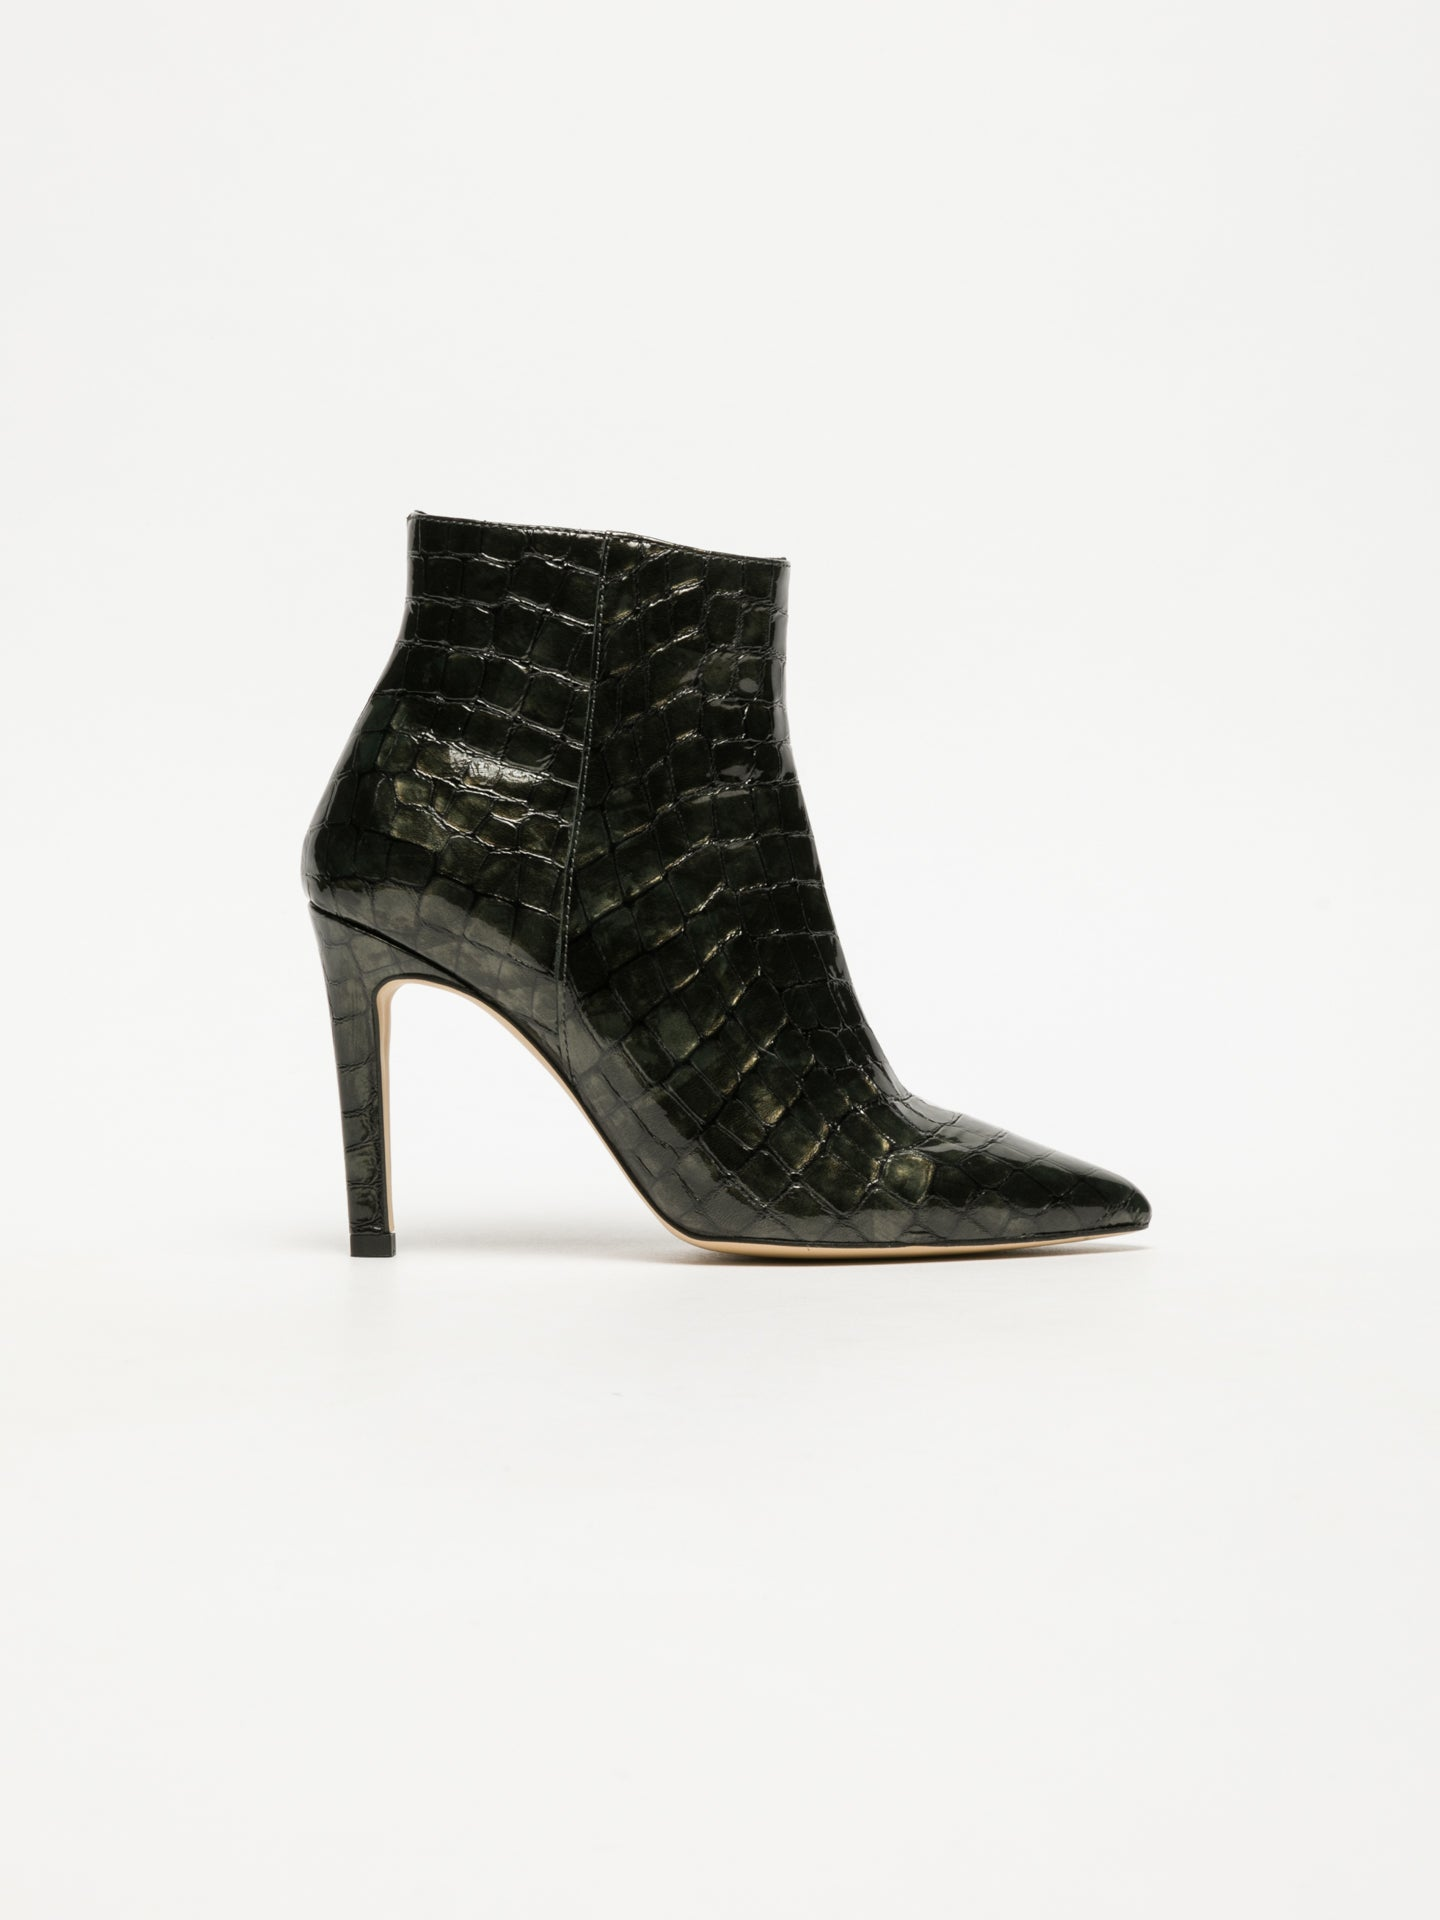 Sofia Costa DarkGreen Pointed Toe Ankle Boots